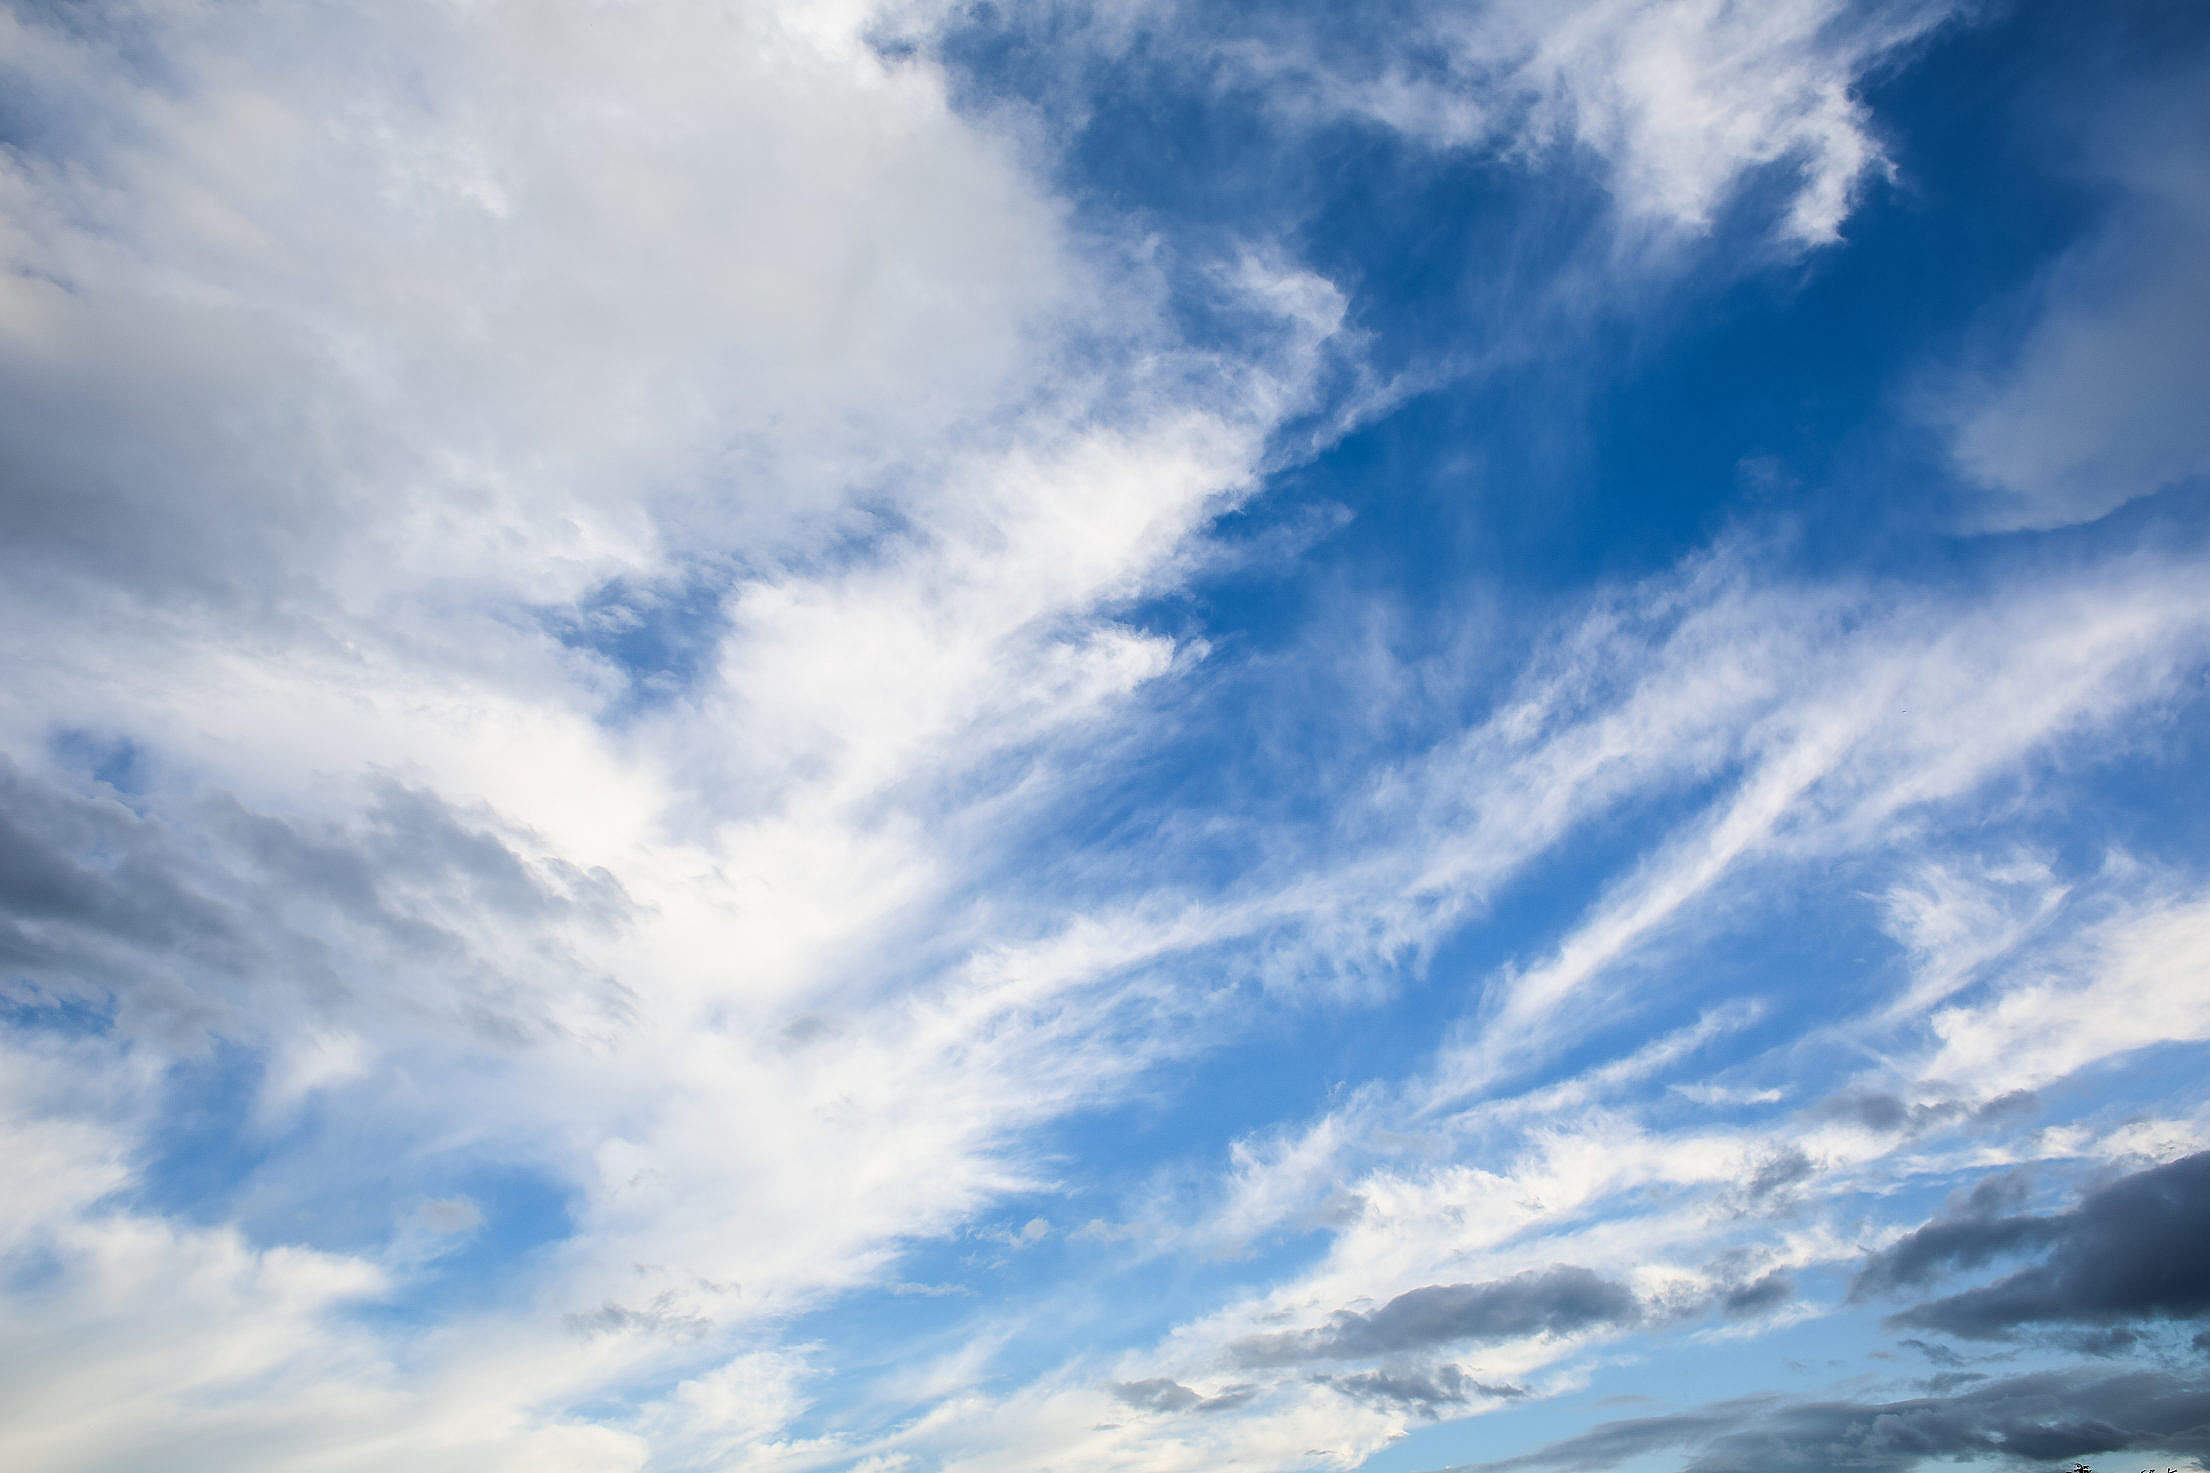 The Sky Full of Clouds Free Stock Photo